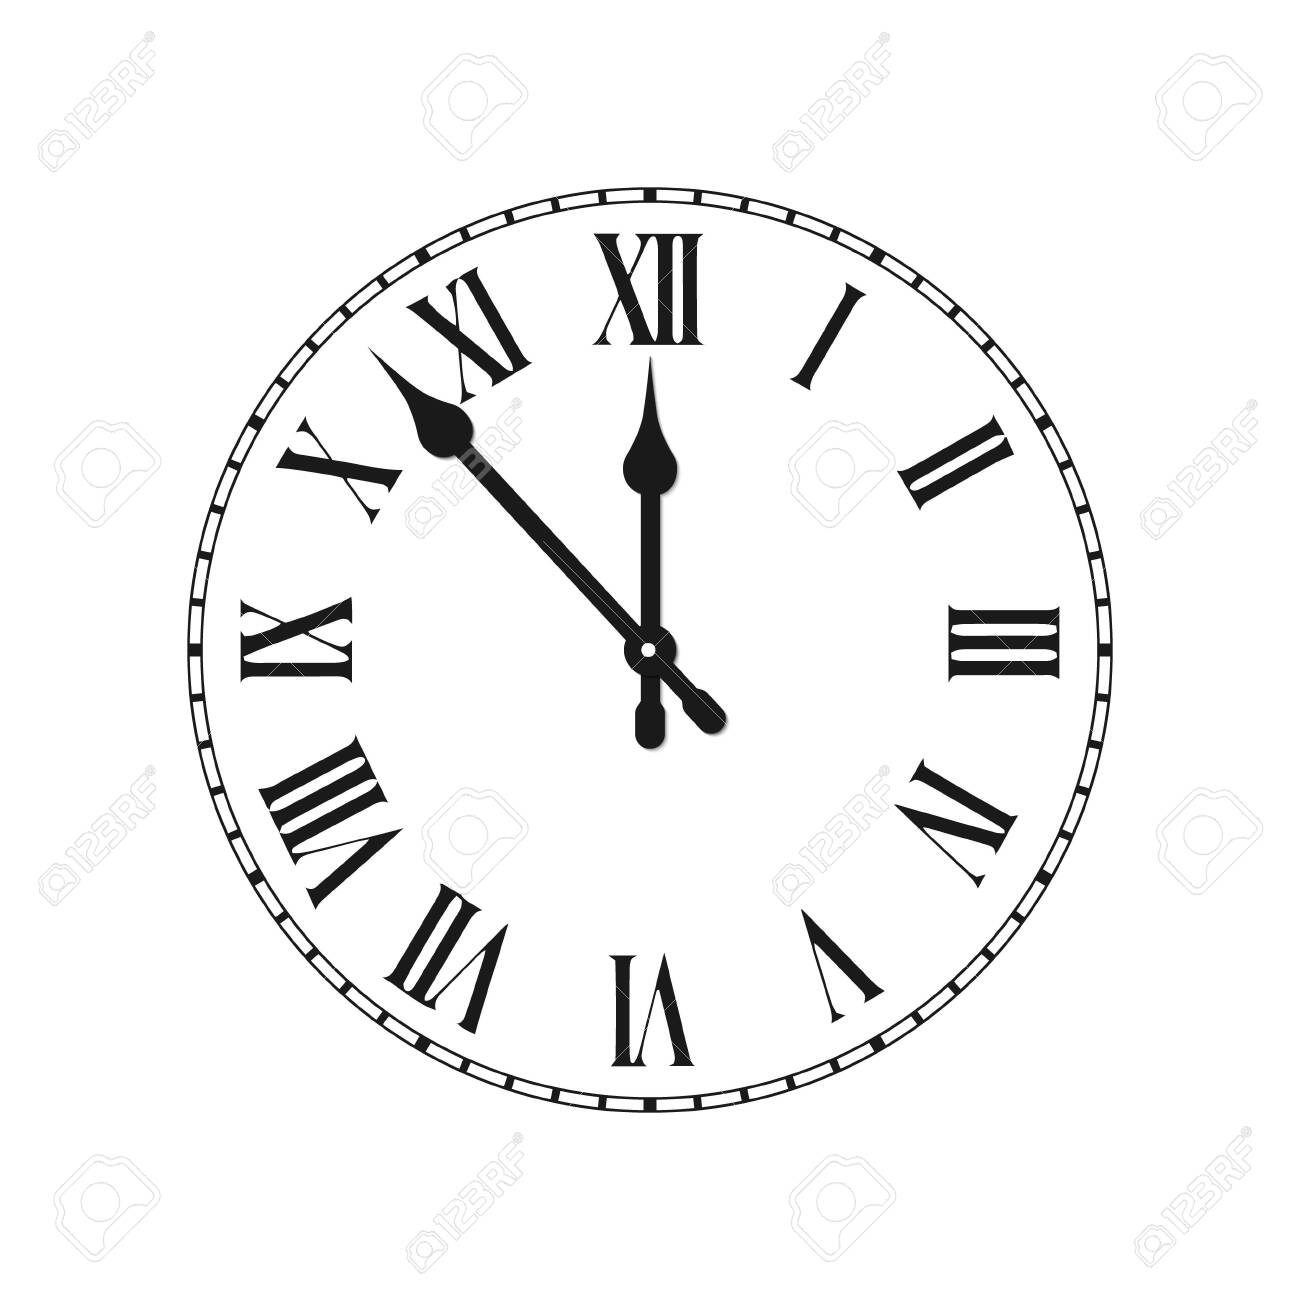 Clock face with roman numerals time - 139509026